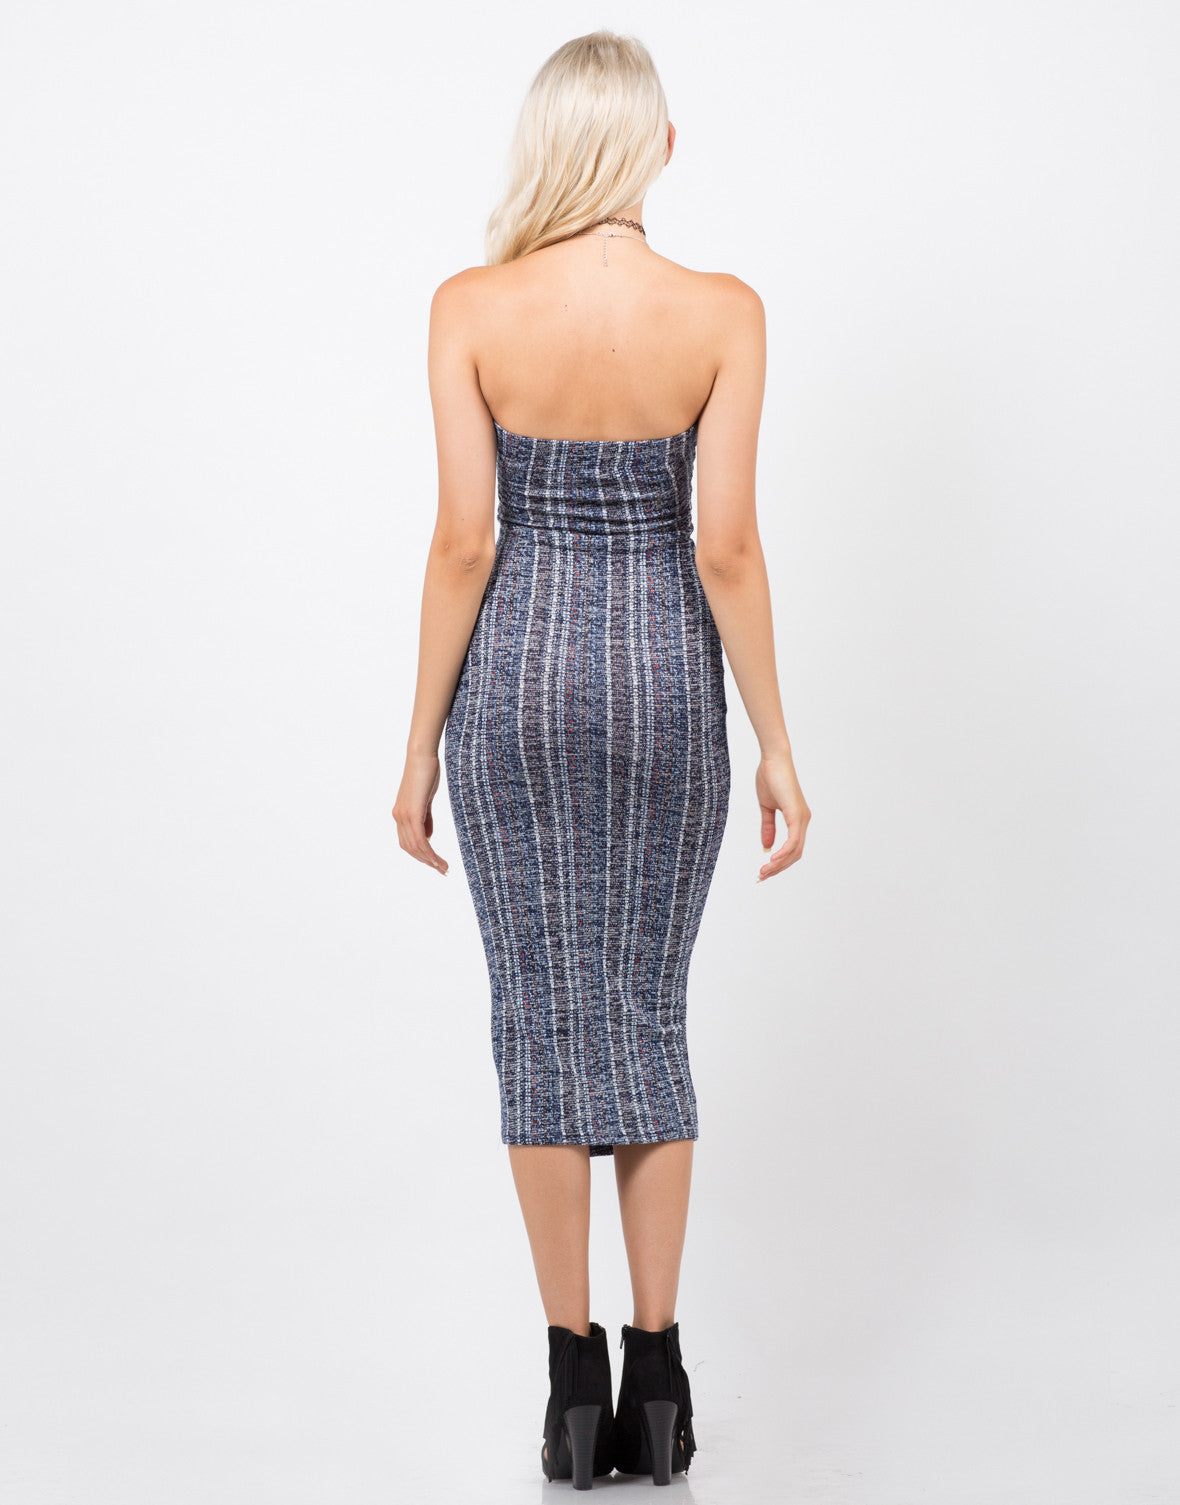 Back View of Soft Textured Strapless Dress